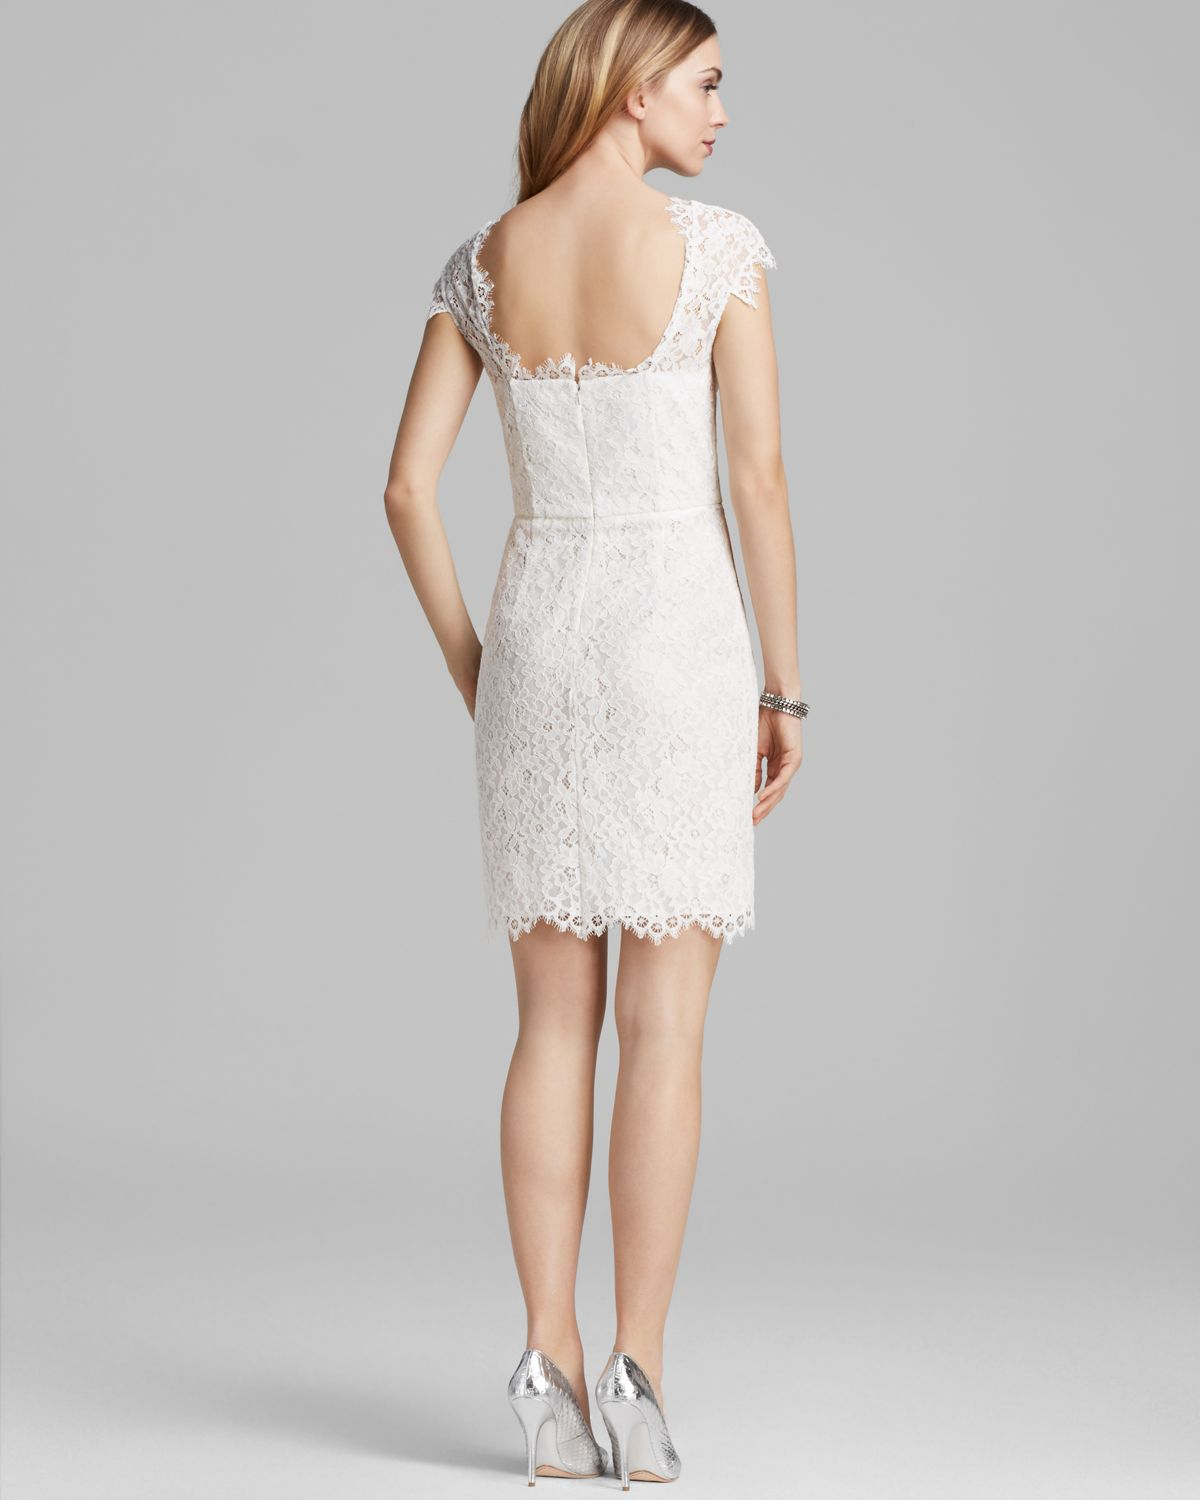 Shoshanna Dress Scarlett Cap Sleeve Lace in White | Lyst